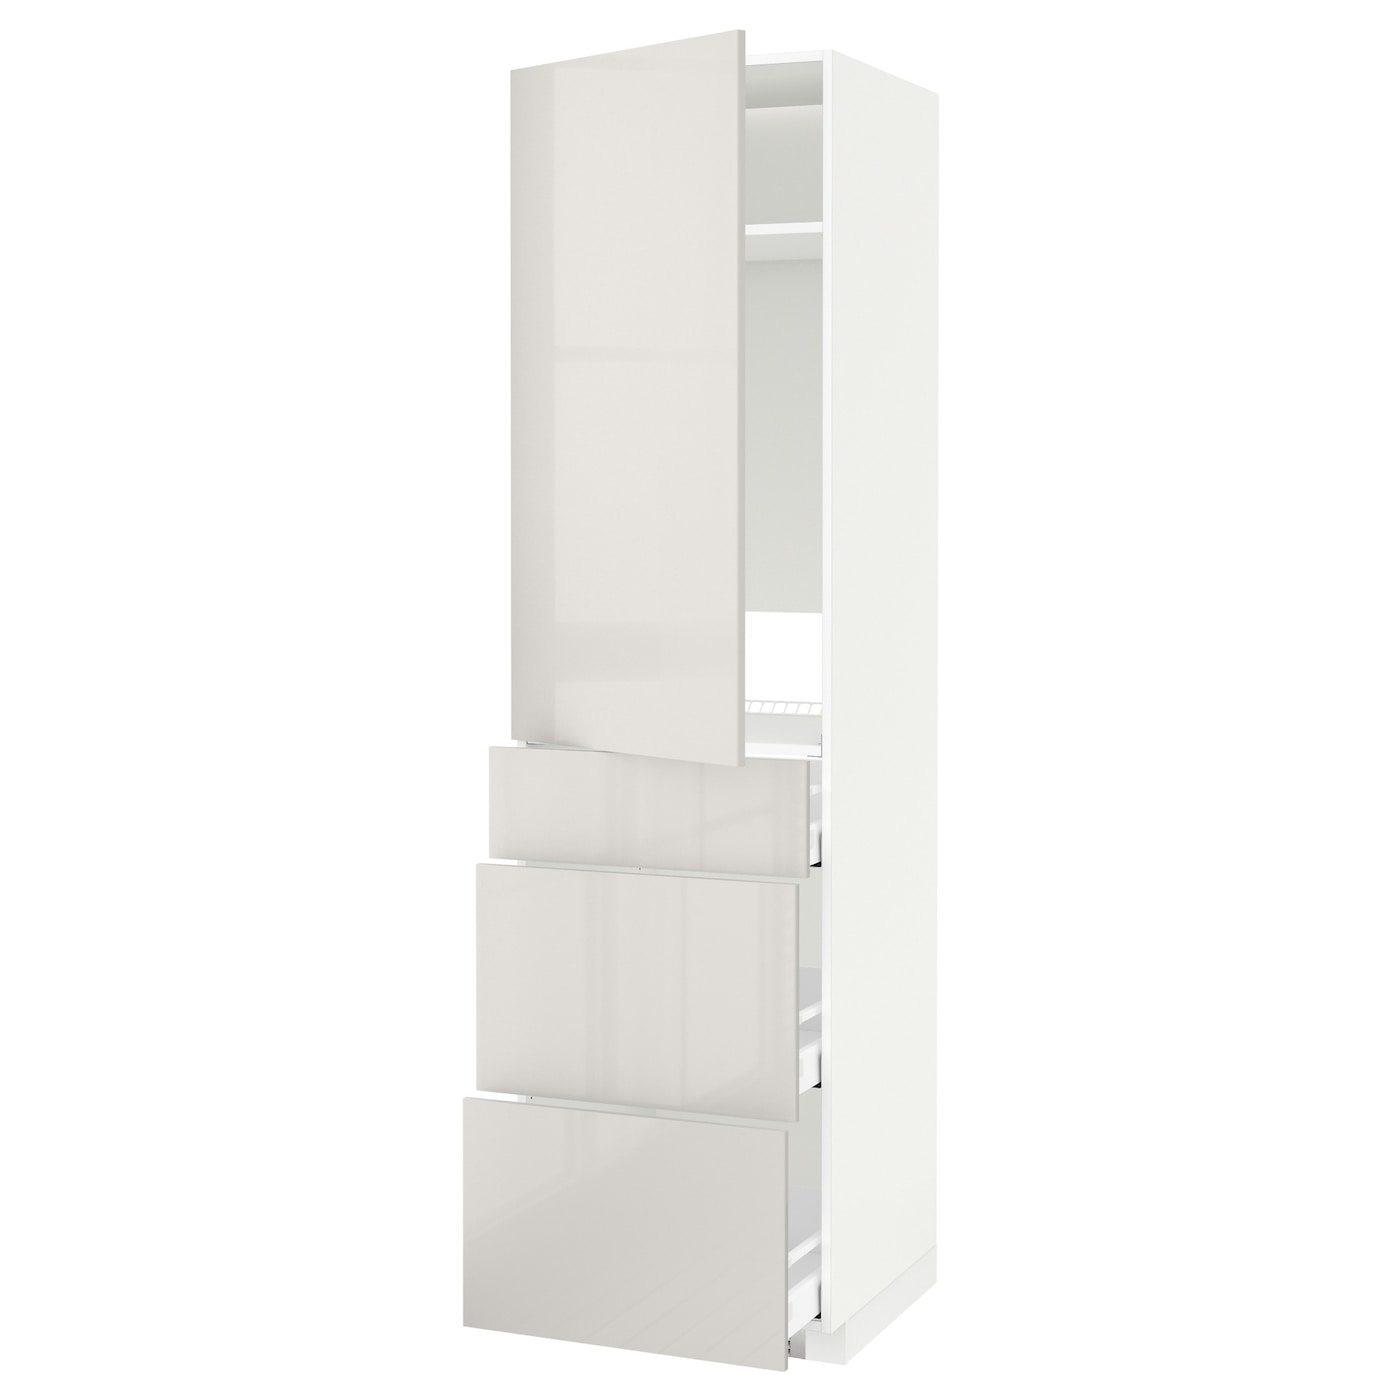 IKEA METOD/MAXIMERA high cab f fridge w door/3 drawers Sturdy frame construction, 18 mm thick.